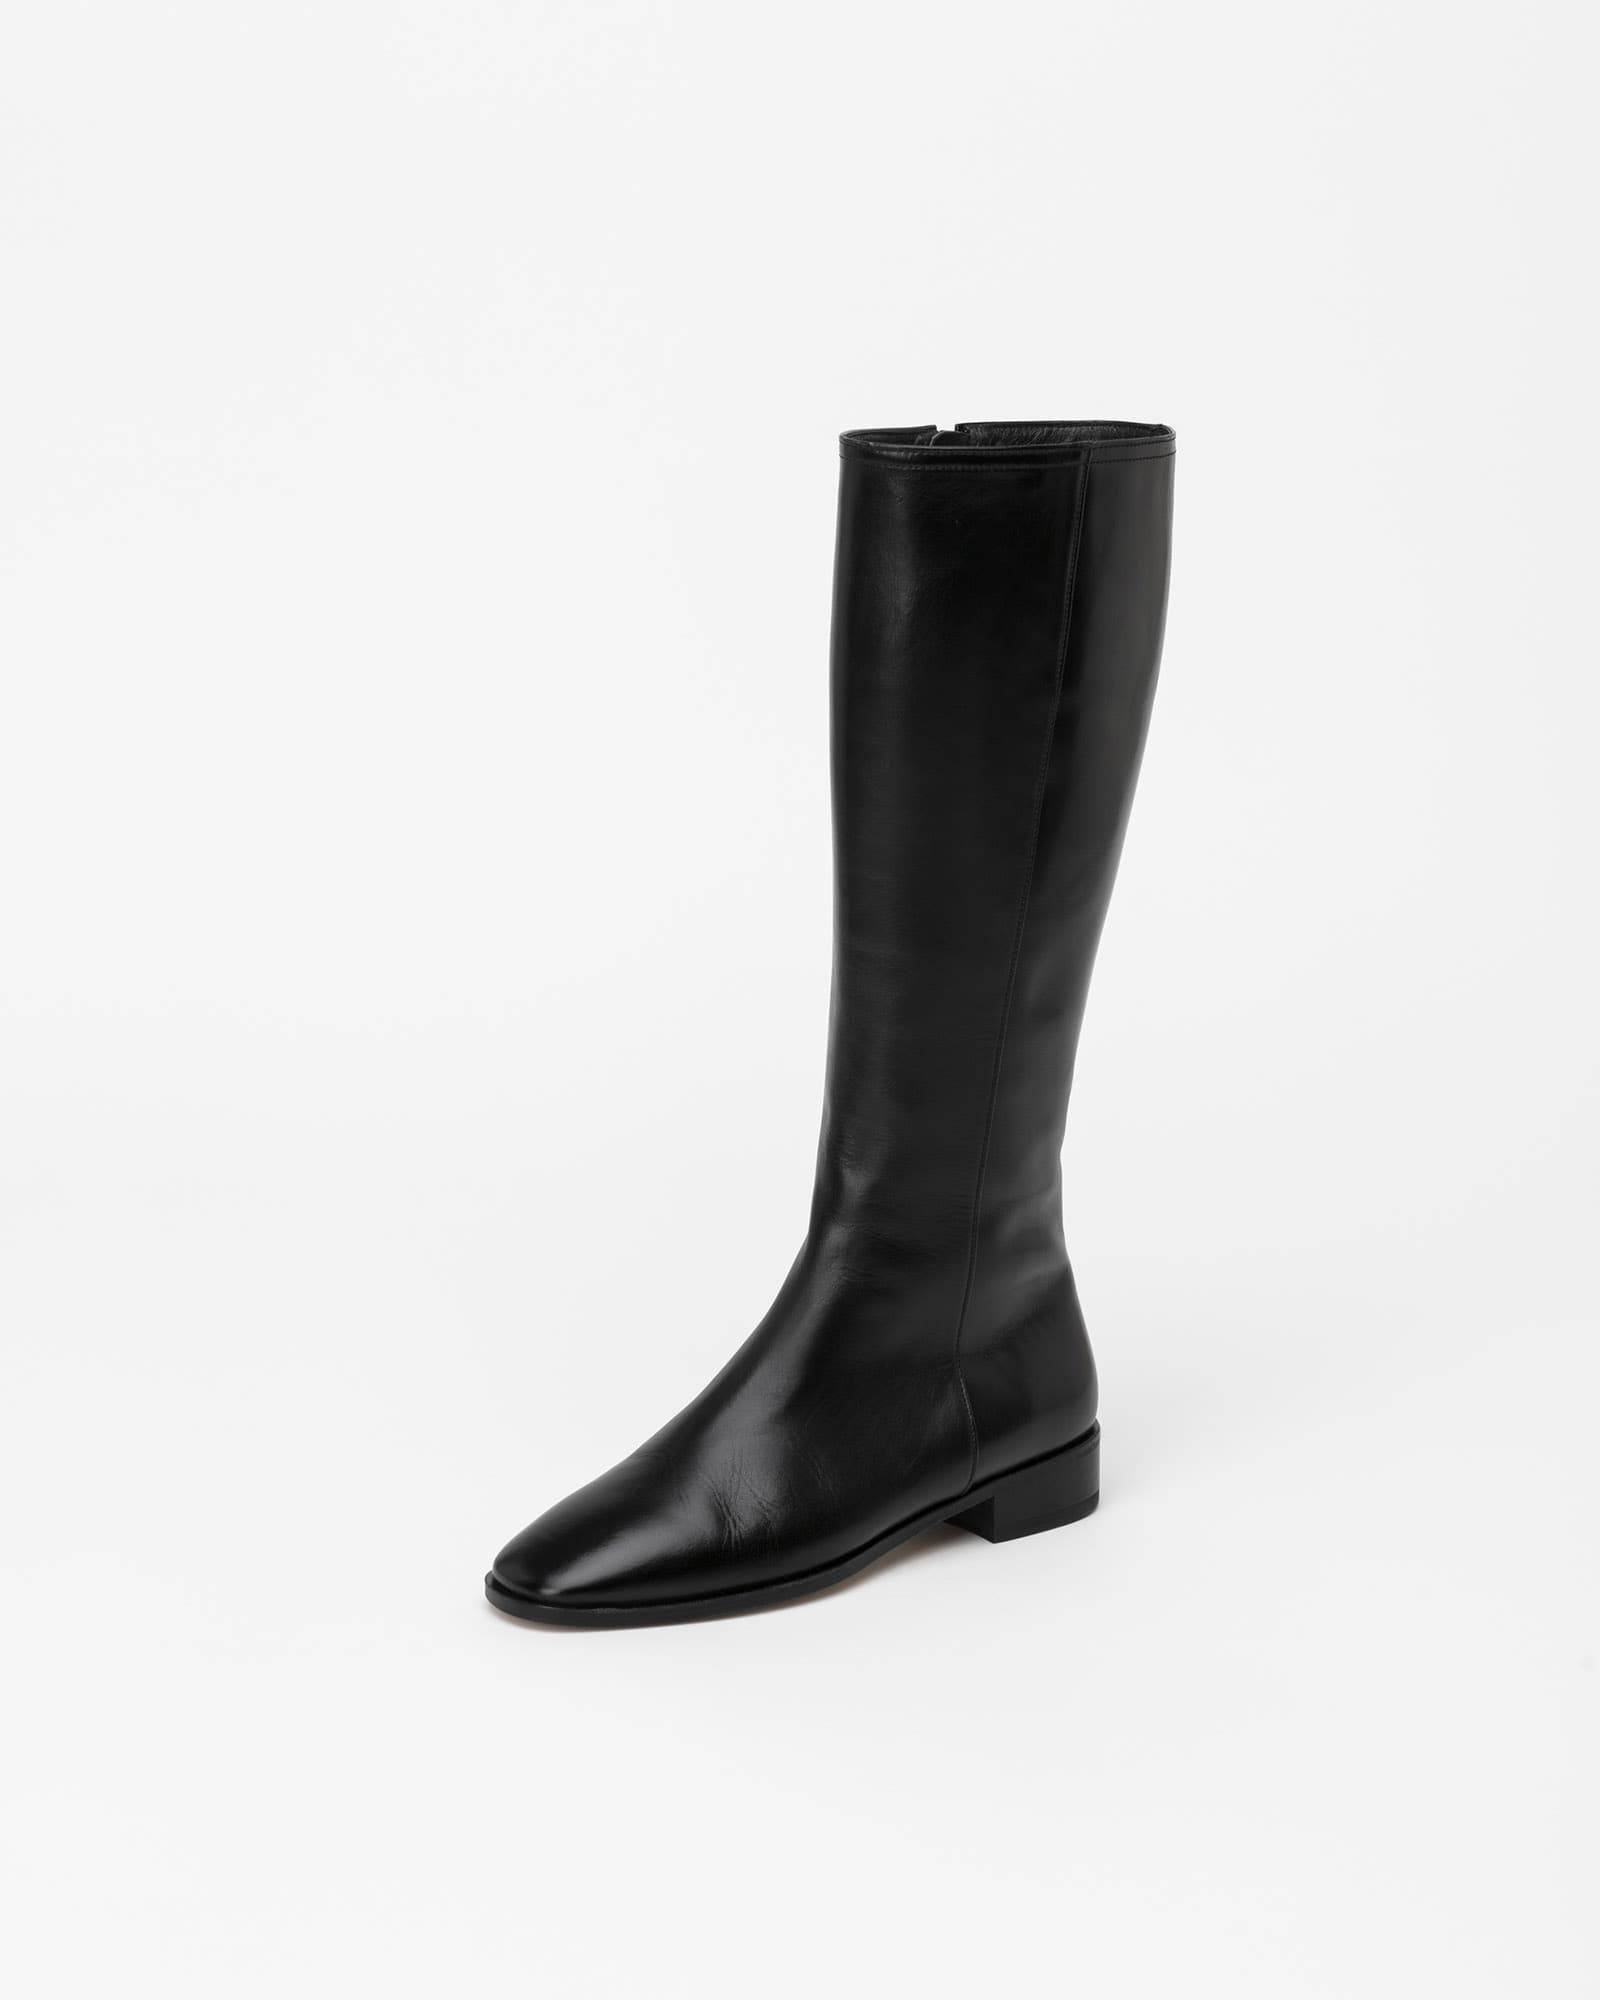 Panache Riding Boots in Textured Black